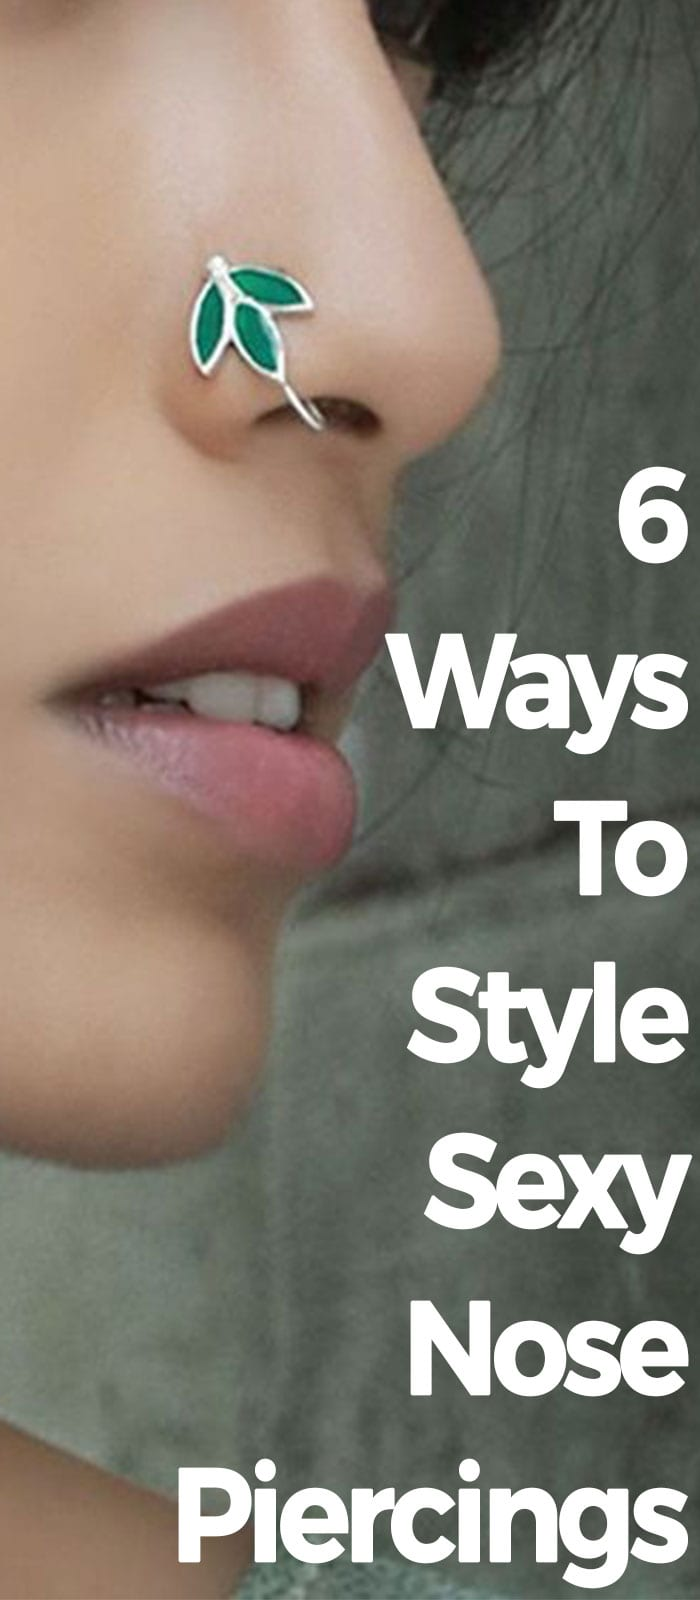 6 Ways To Style Sexy Nose Piercings